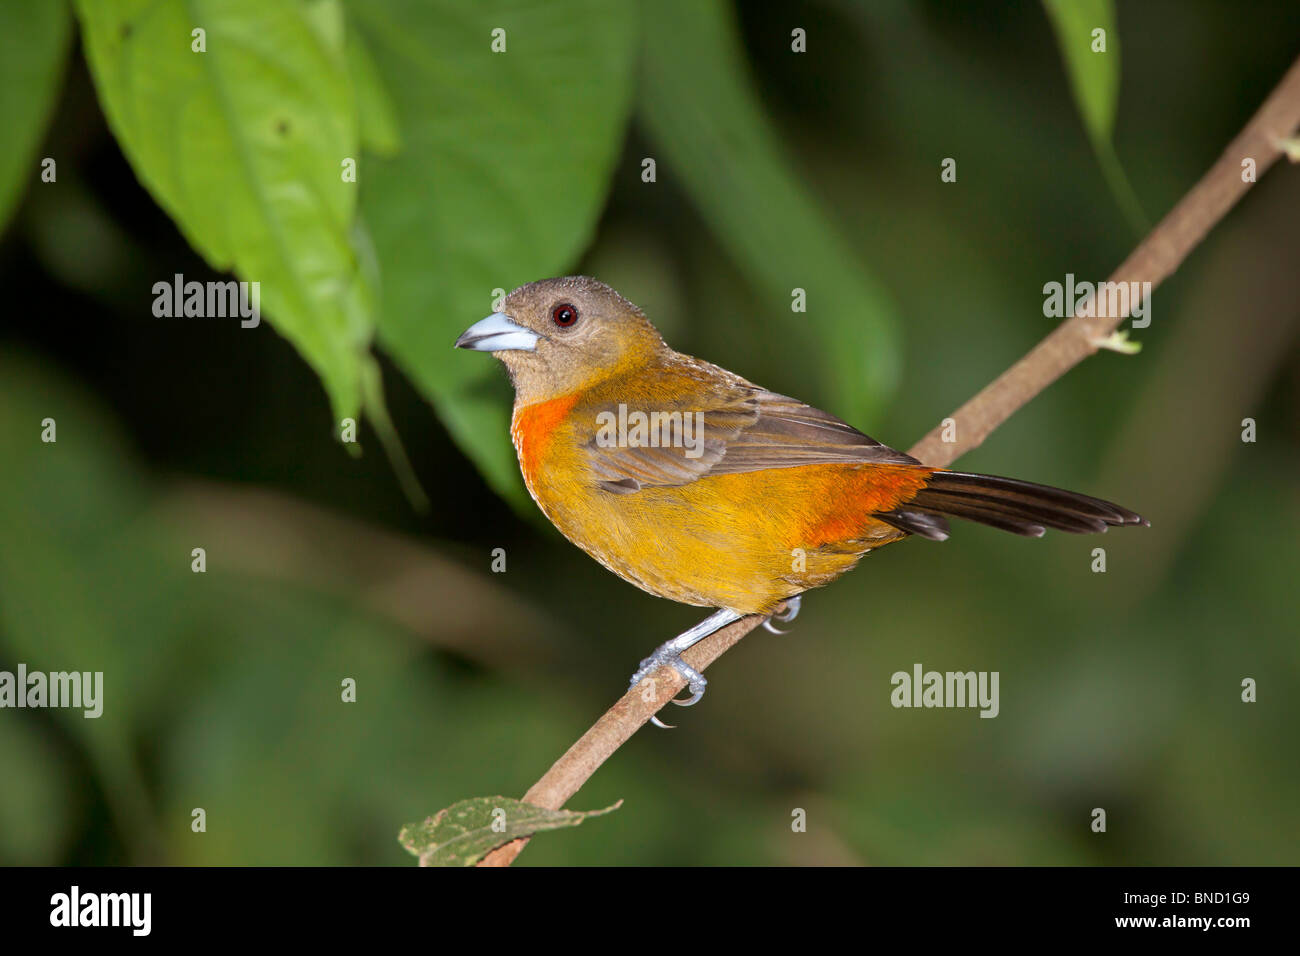 Cherrie's Tanager Adult Female Endemic to Costa Rica and Panama. - Stock Image